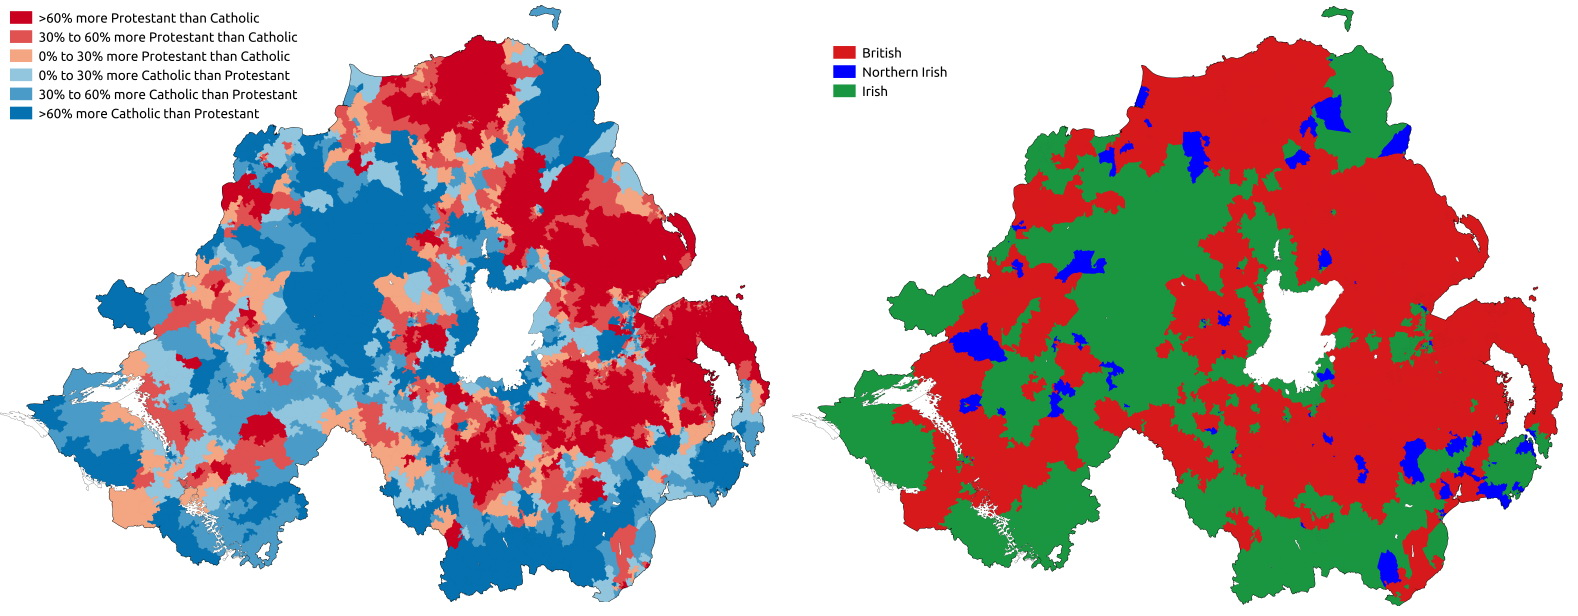 Religion & national identity in Northern Ireland